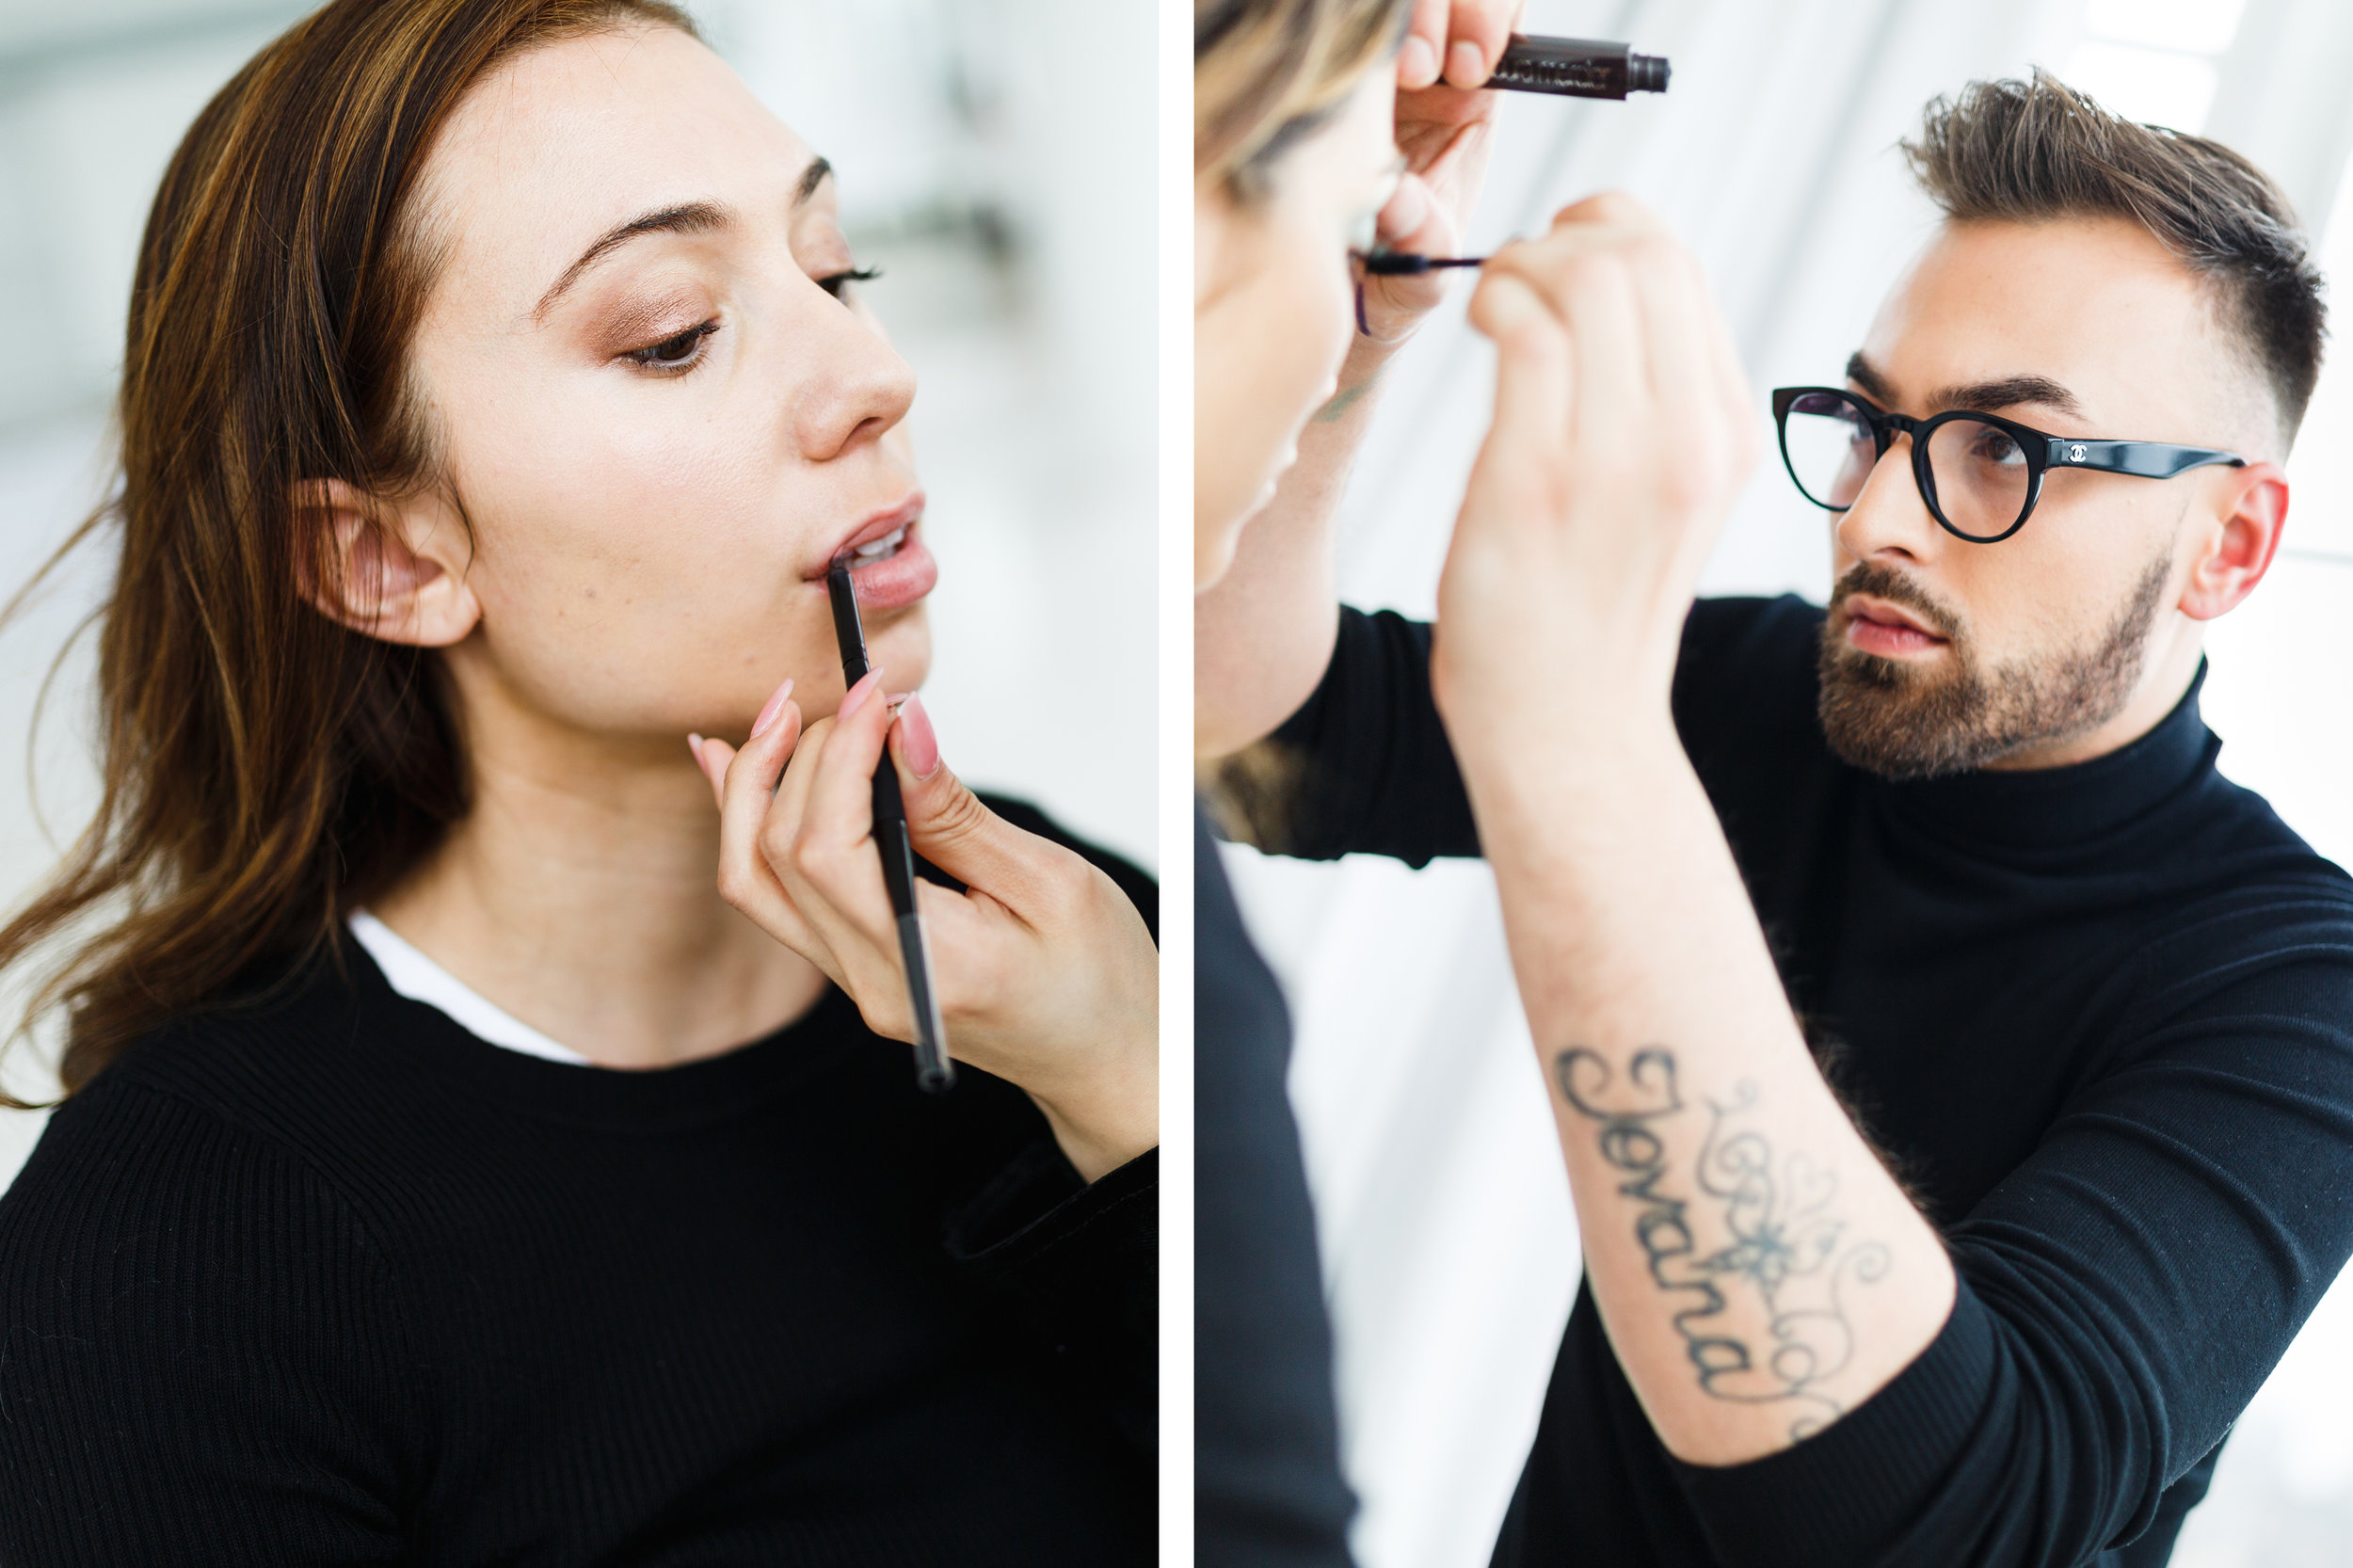 LAURA MERCIER'S EDITORIAL WORKSHOP AT JACK STUDIOS, NYC